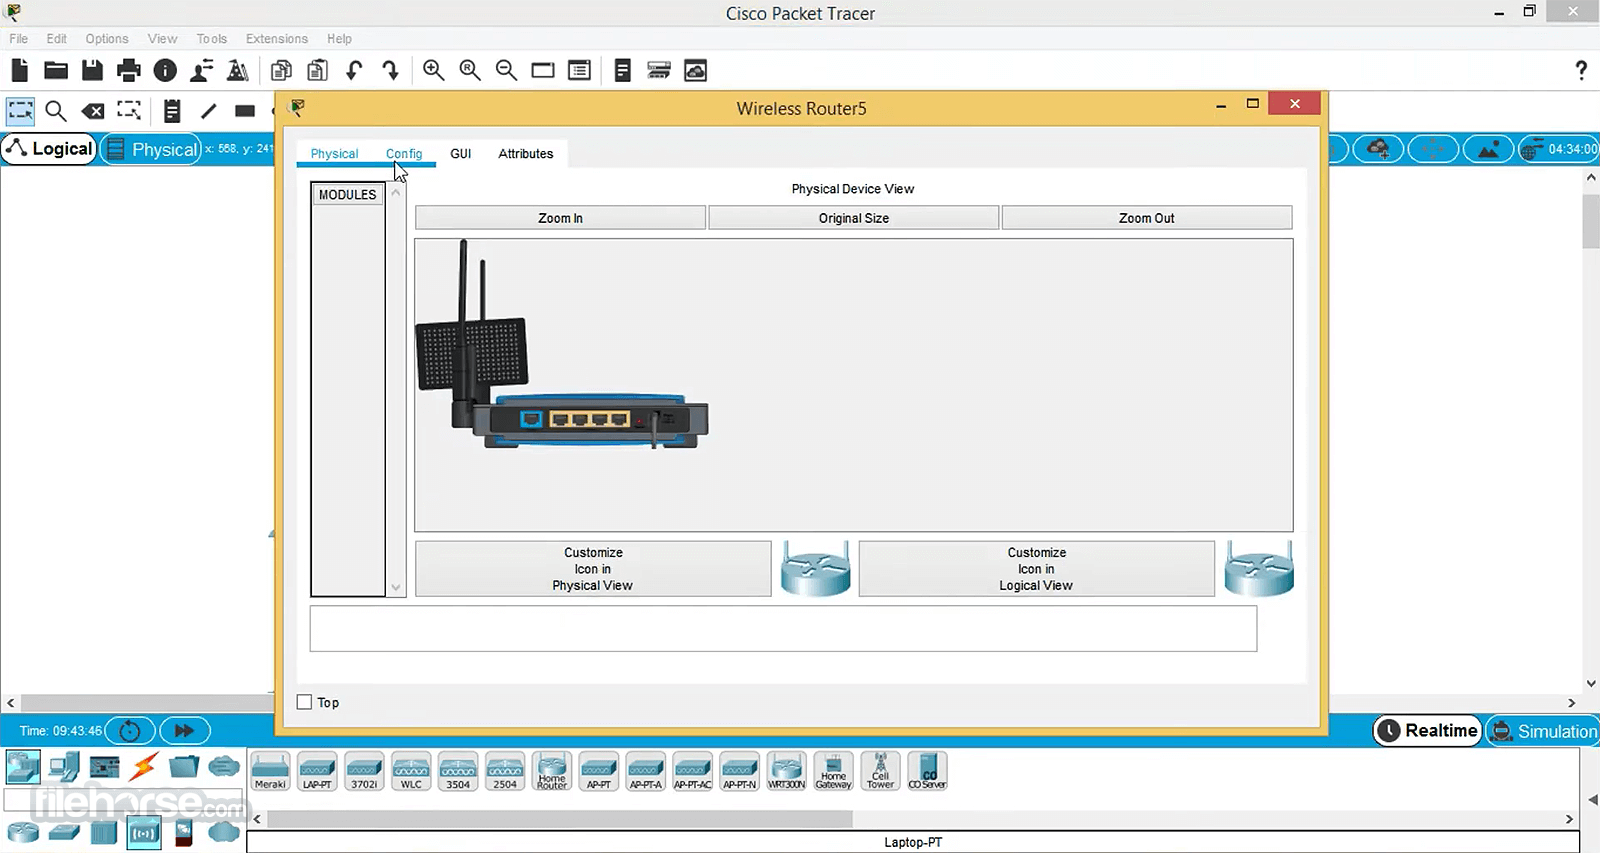 5.3.2 GRATUITEMENT CISCO TÉLÉCHARGER PACKET TRACER